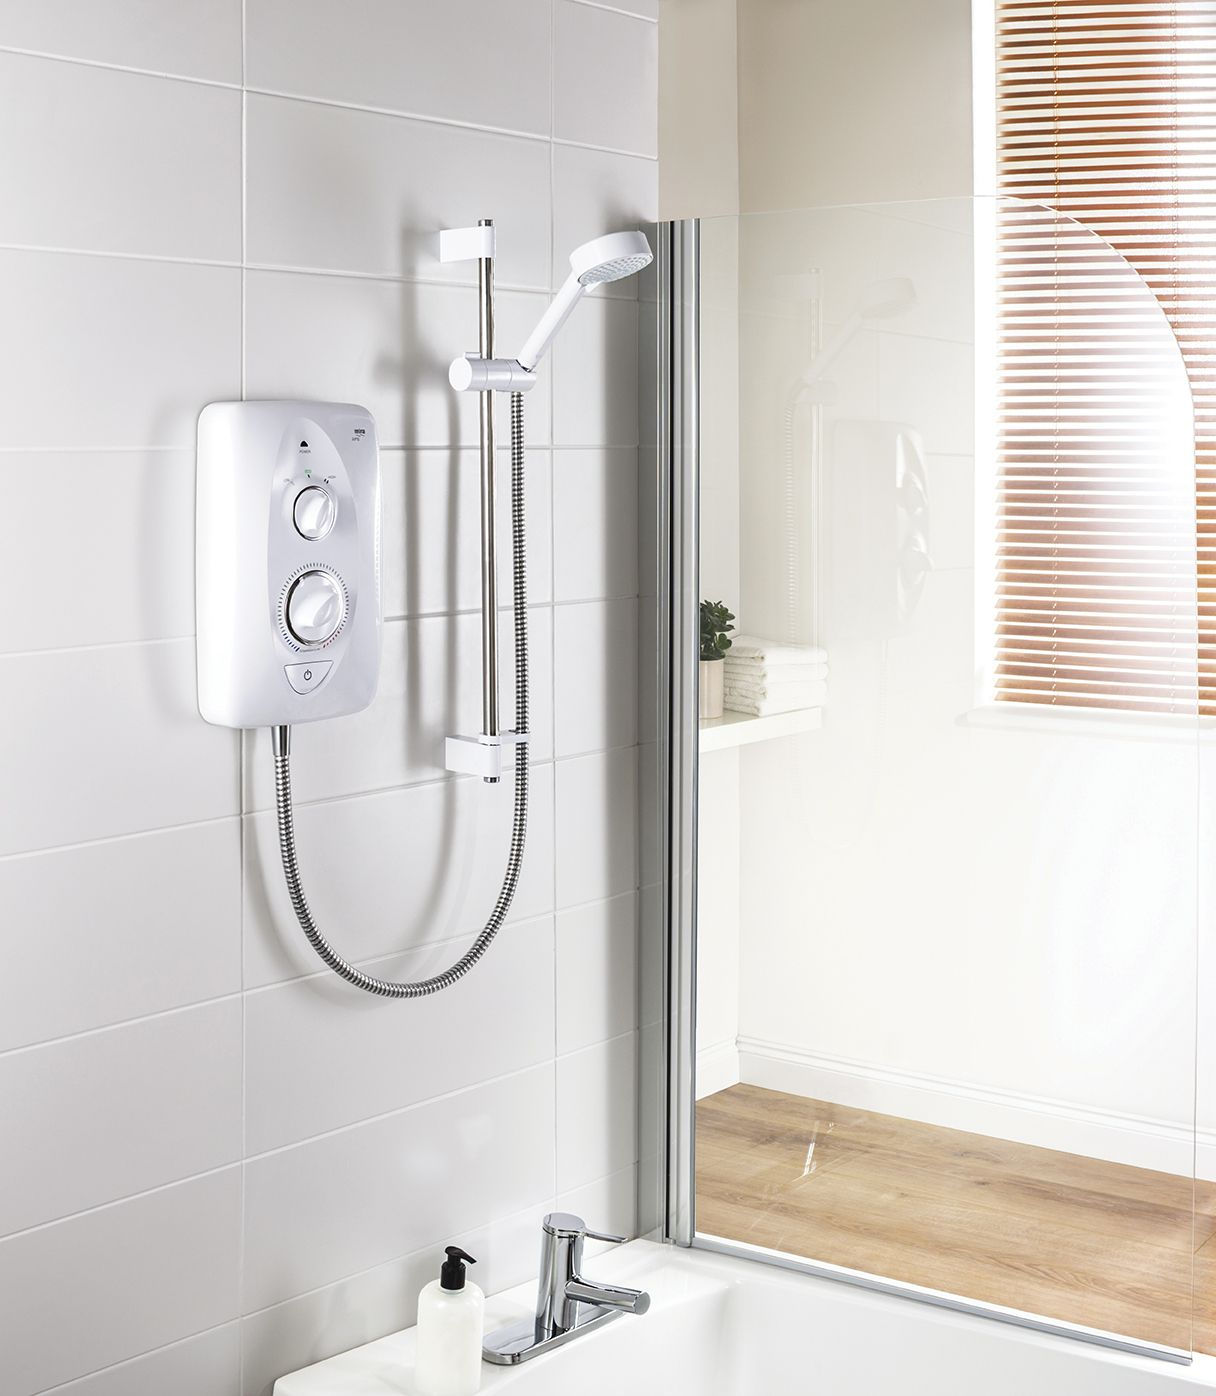 the new contemporary affordable mira jump multi fit electric mira electric showers incorporate exclusive innovations such as the patented clearscale technology proven to reduce limescale build up